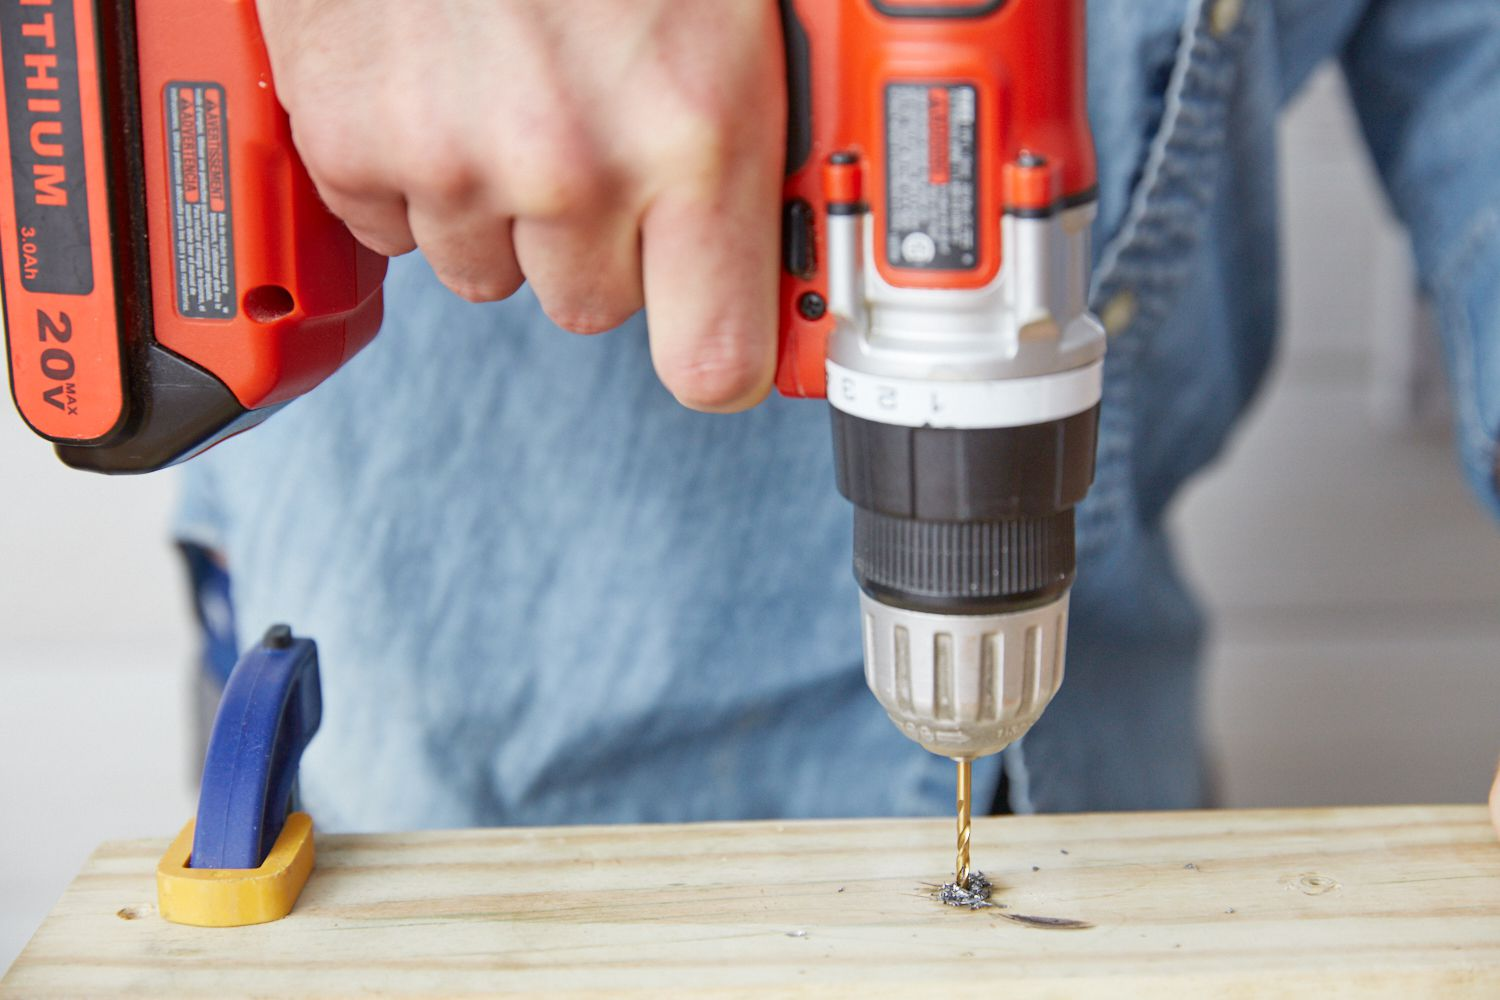 Drilling pilot hole into wood